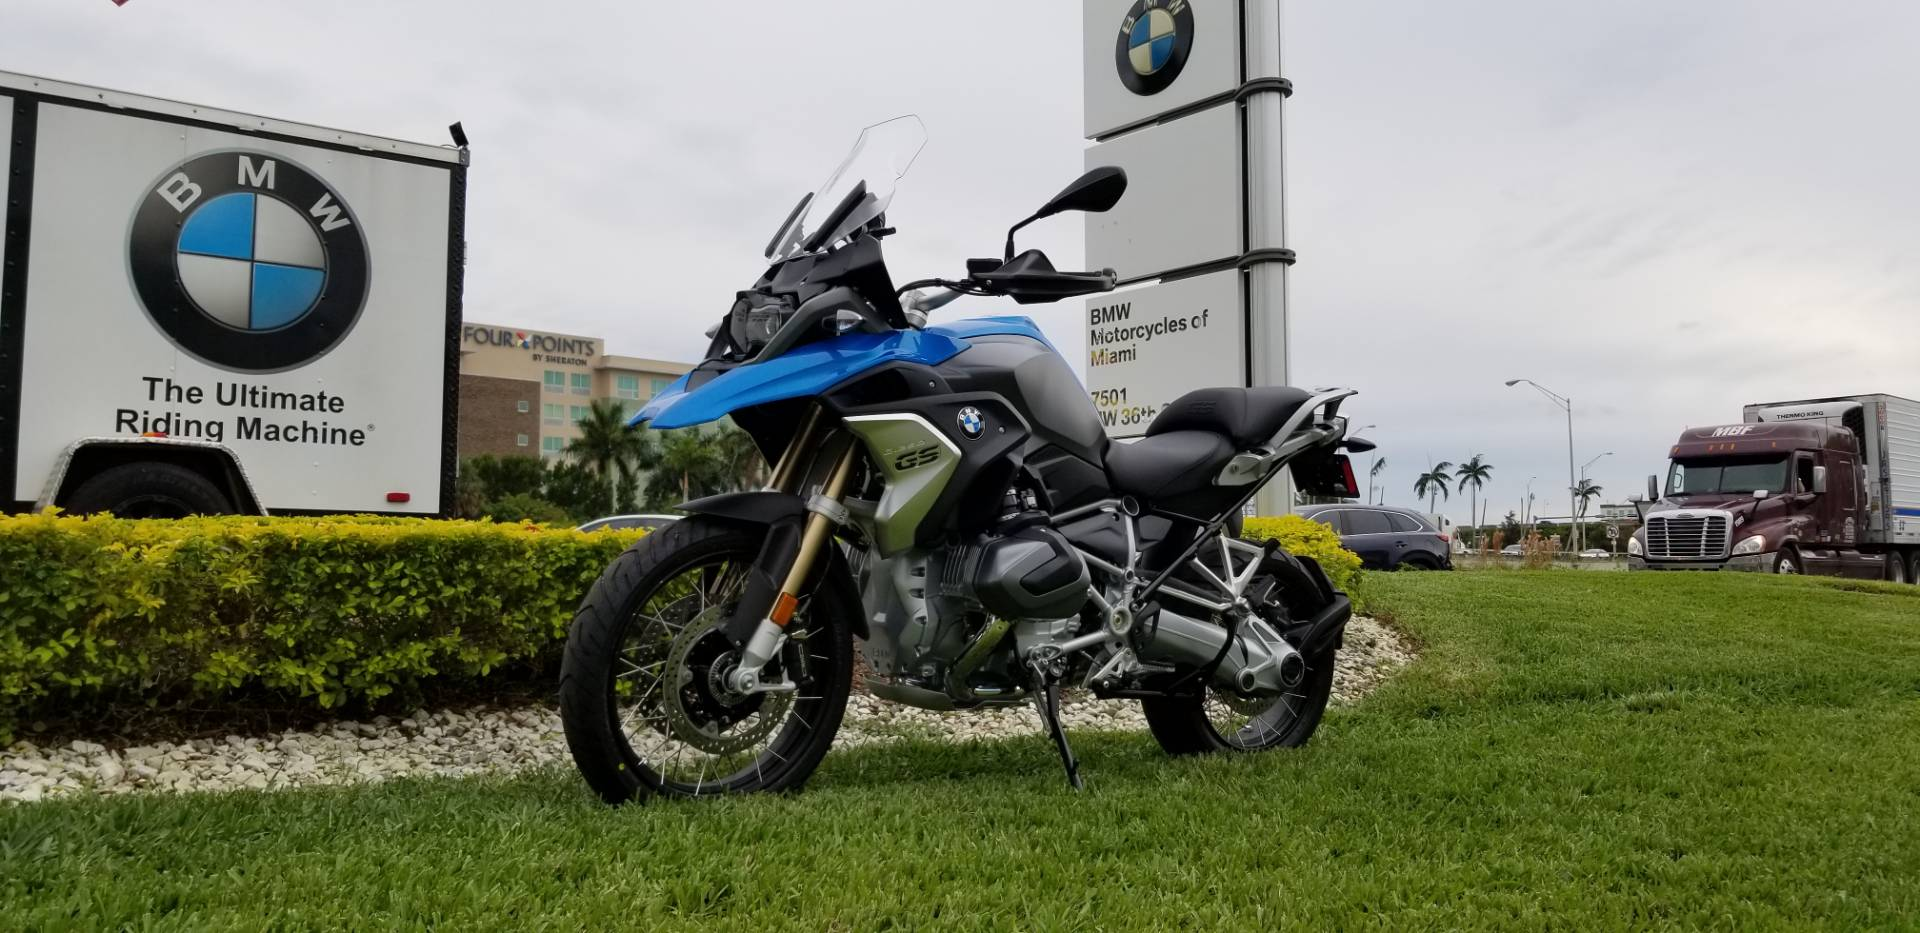 New 2019 BMW R 1250 GS for sale, BMW for sale R 1250GS, BMW Motorcycle R1250GS, new BMW 1250GS, R1250GS, BMW. BMW Motorcycles of Miami, Motorcycles of Miami - Photo 9